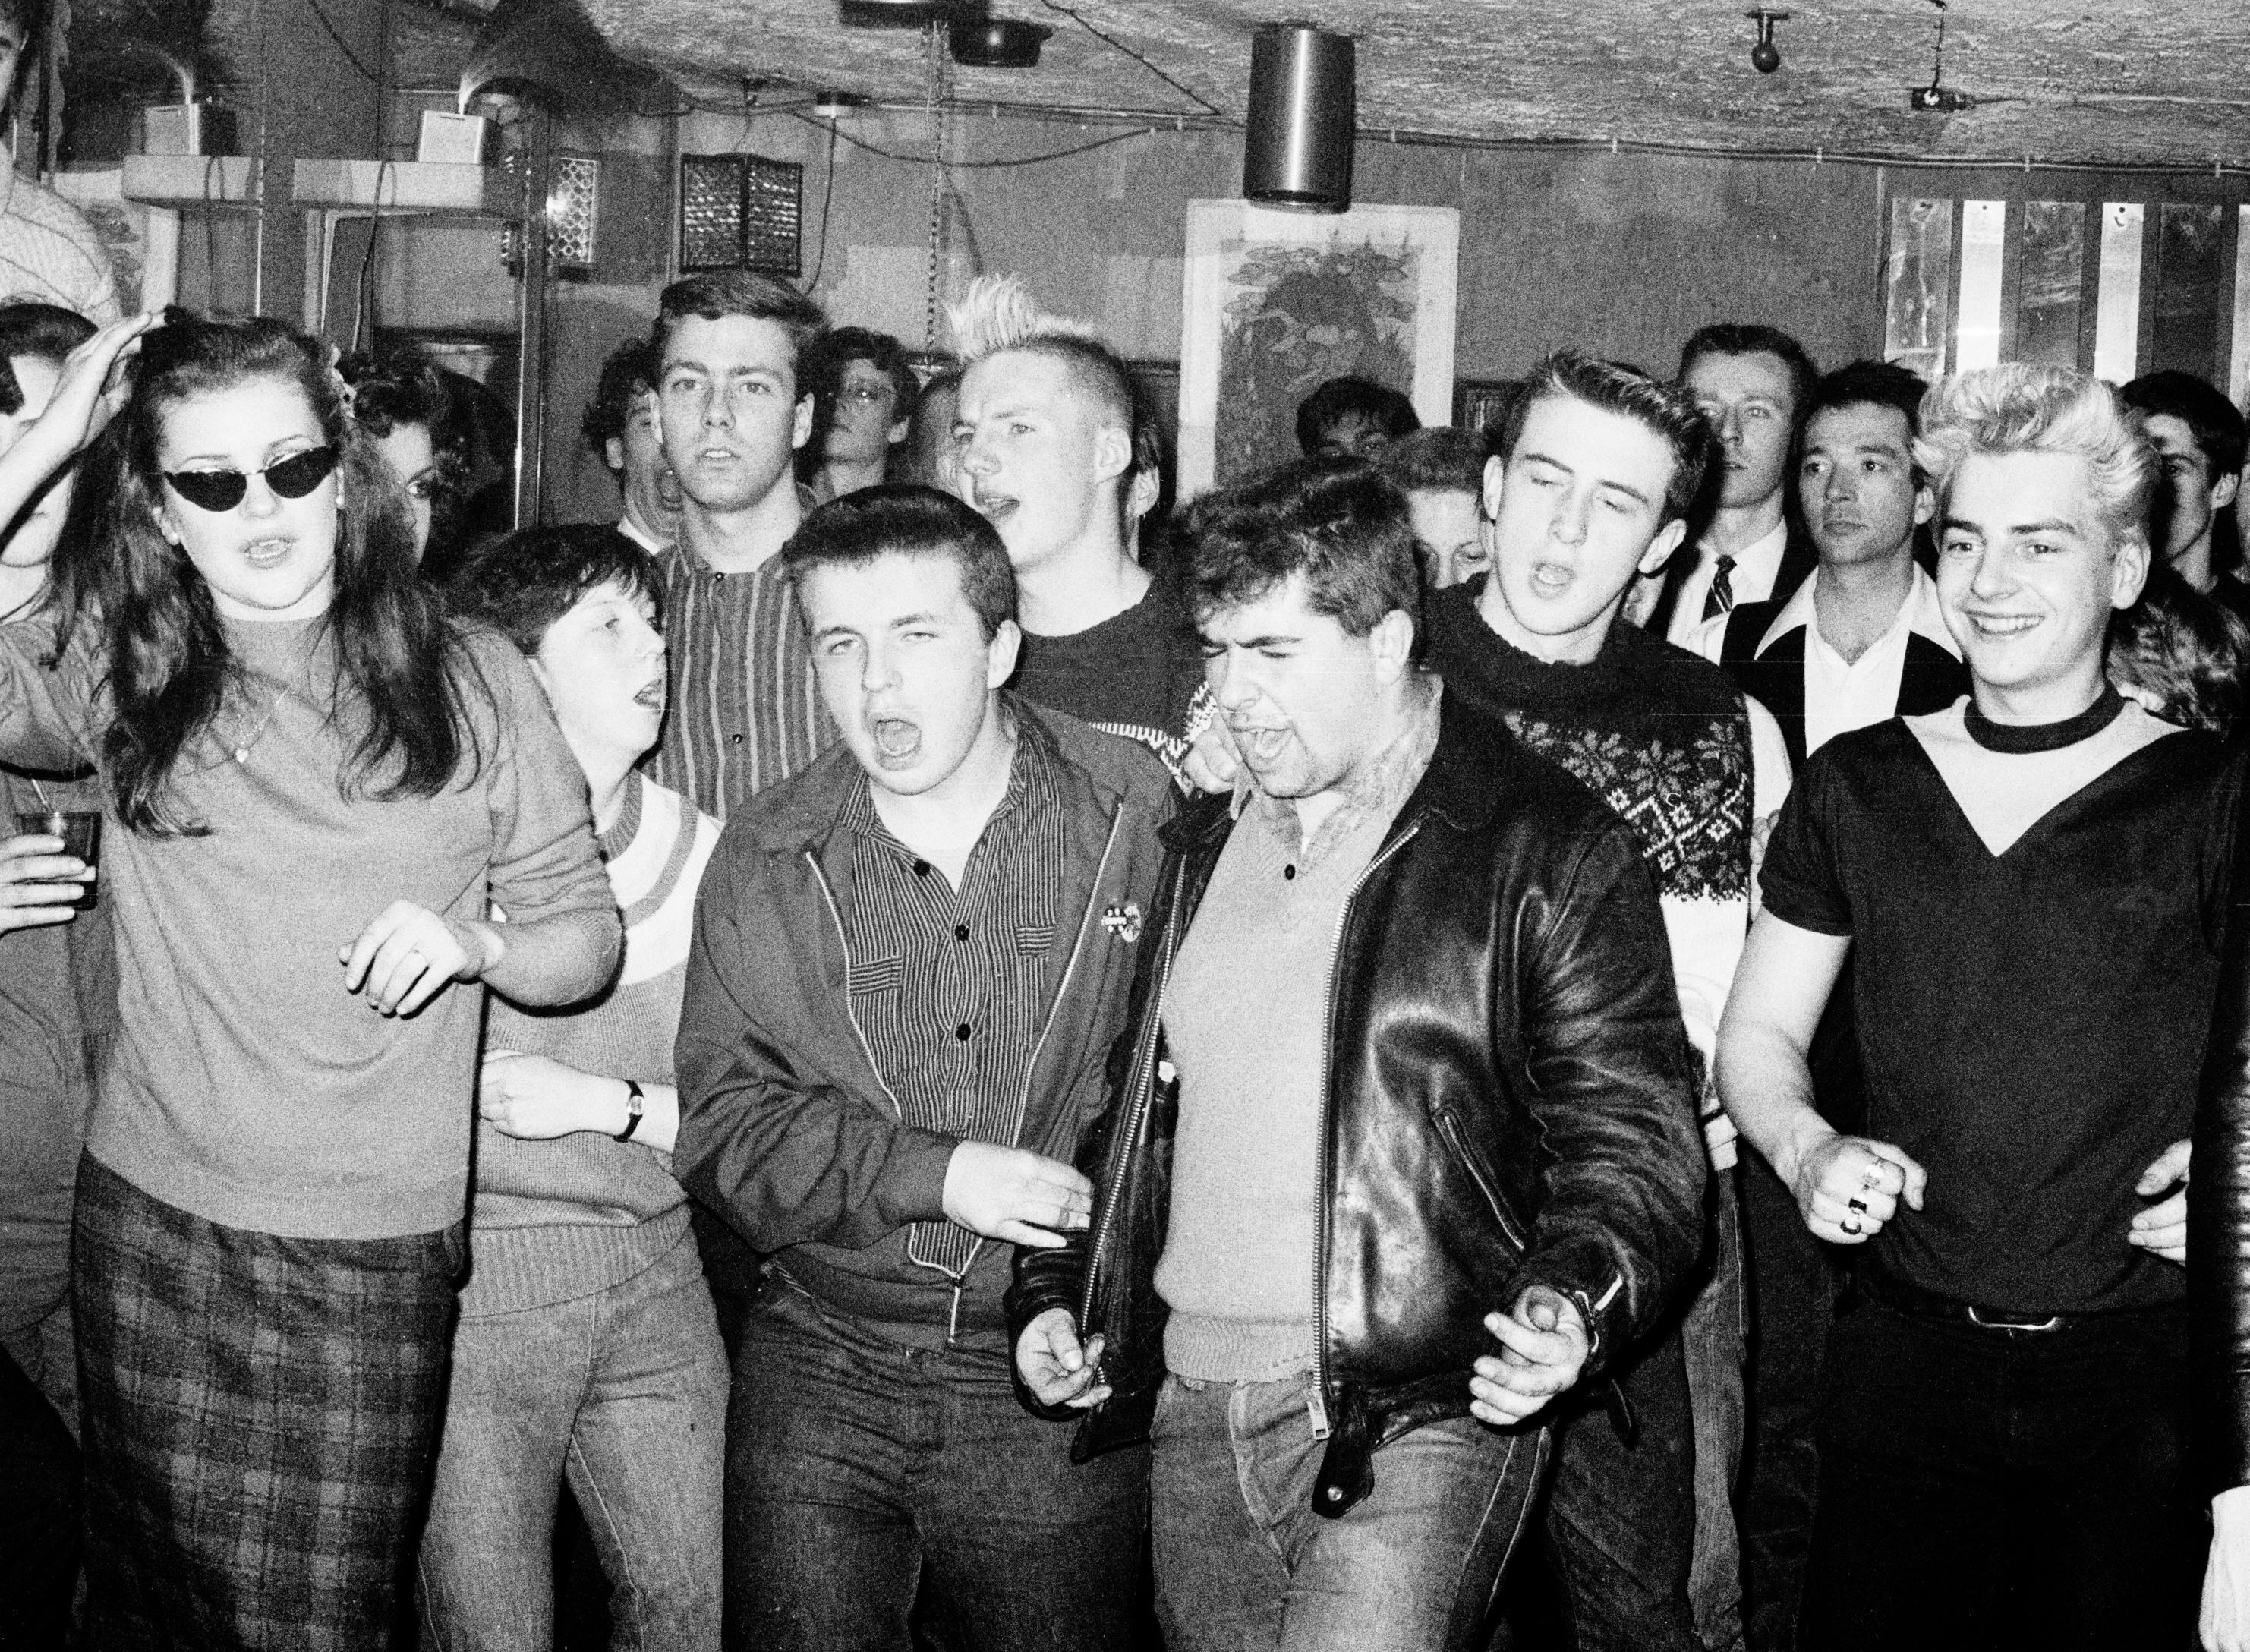 Fans listening to the psychobilly band The Meteors at the Batcave in Soho 1982.